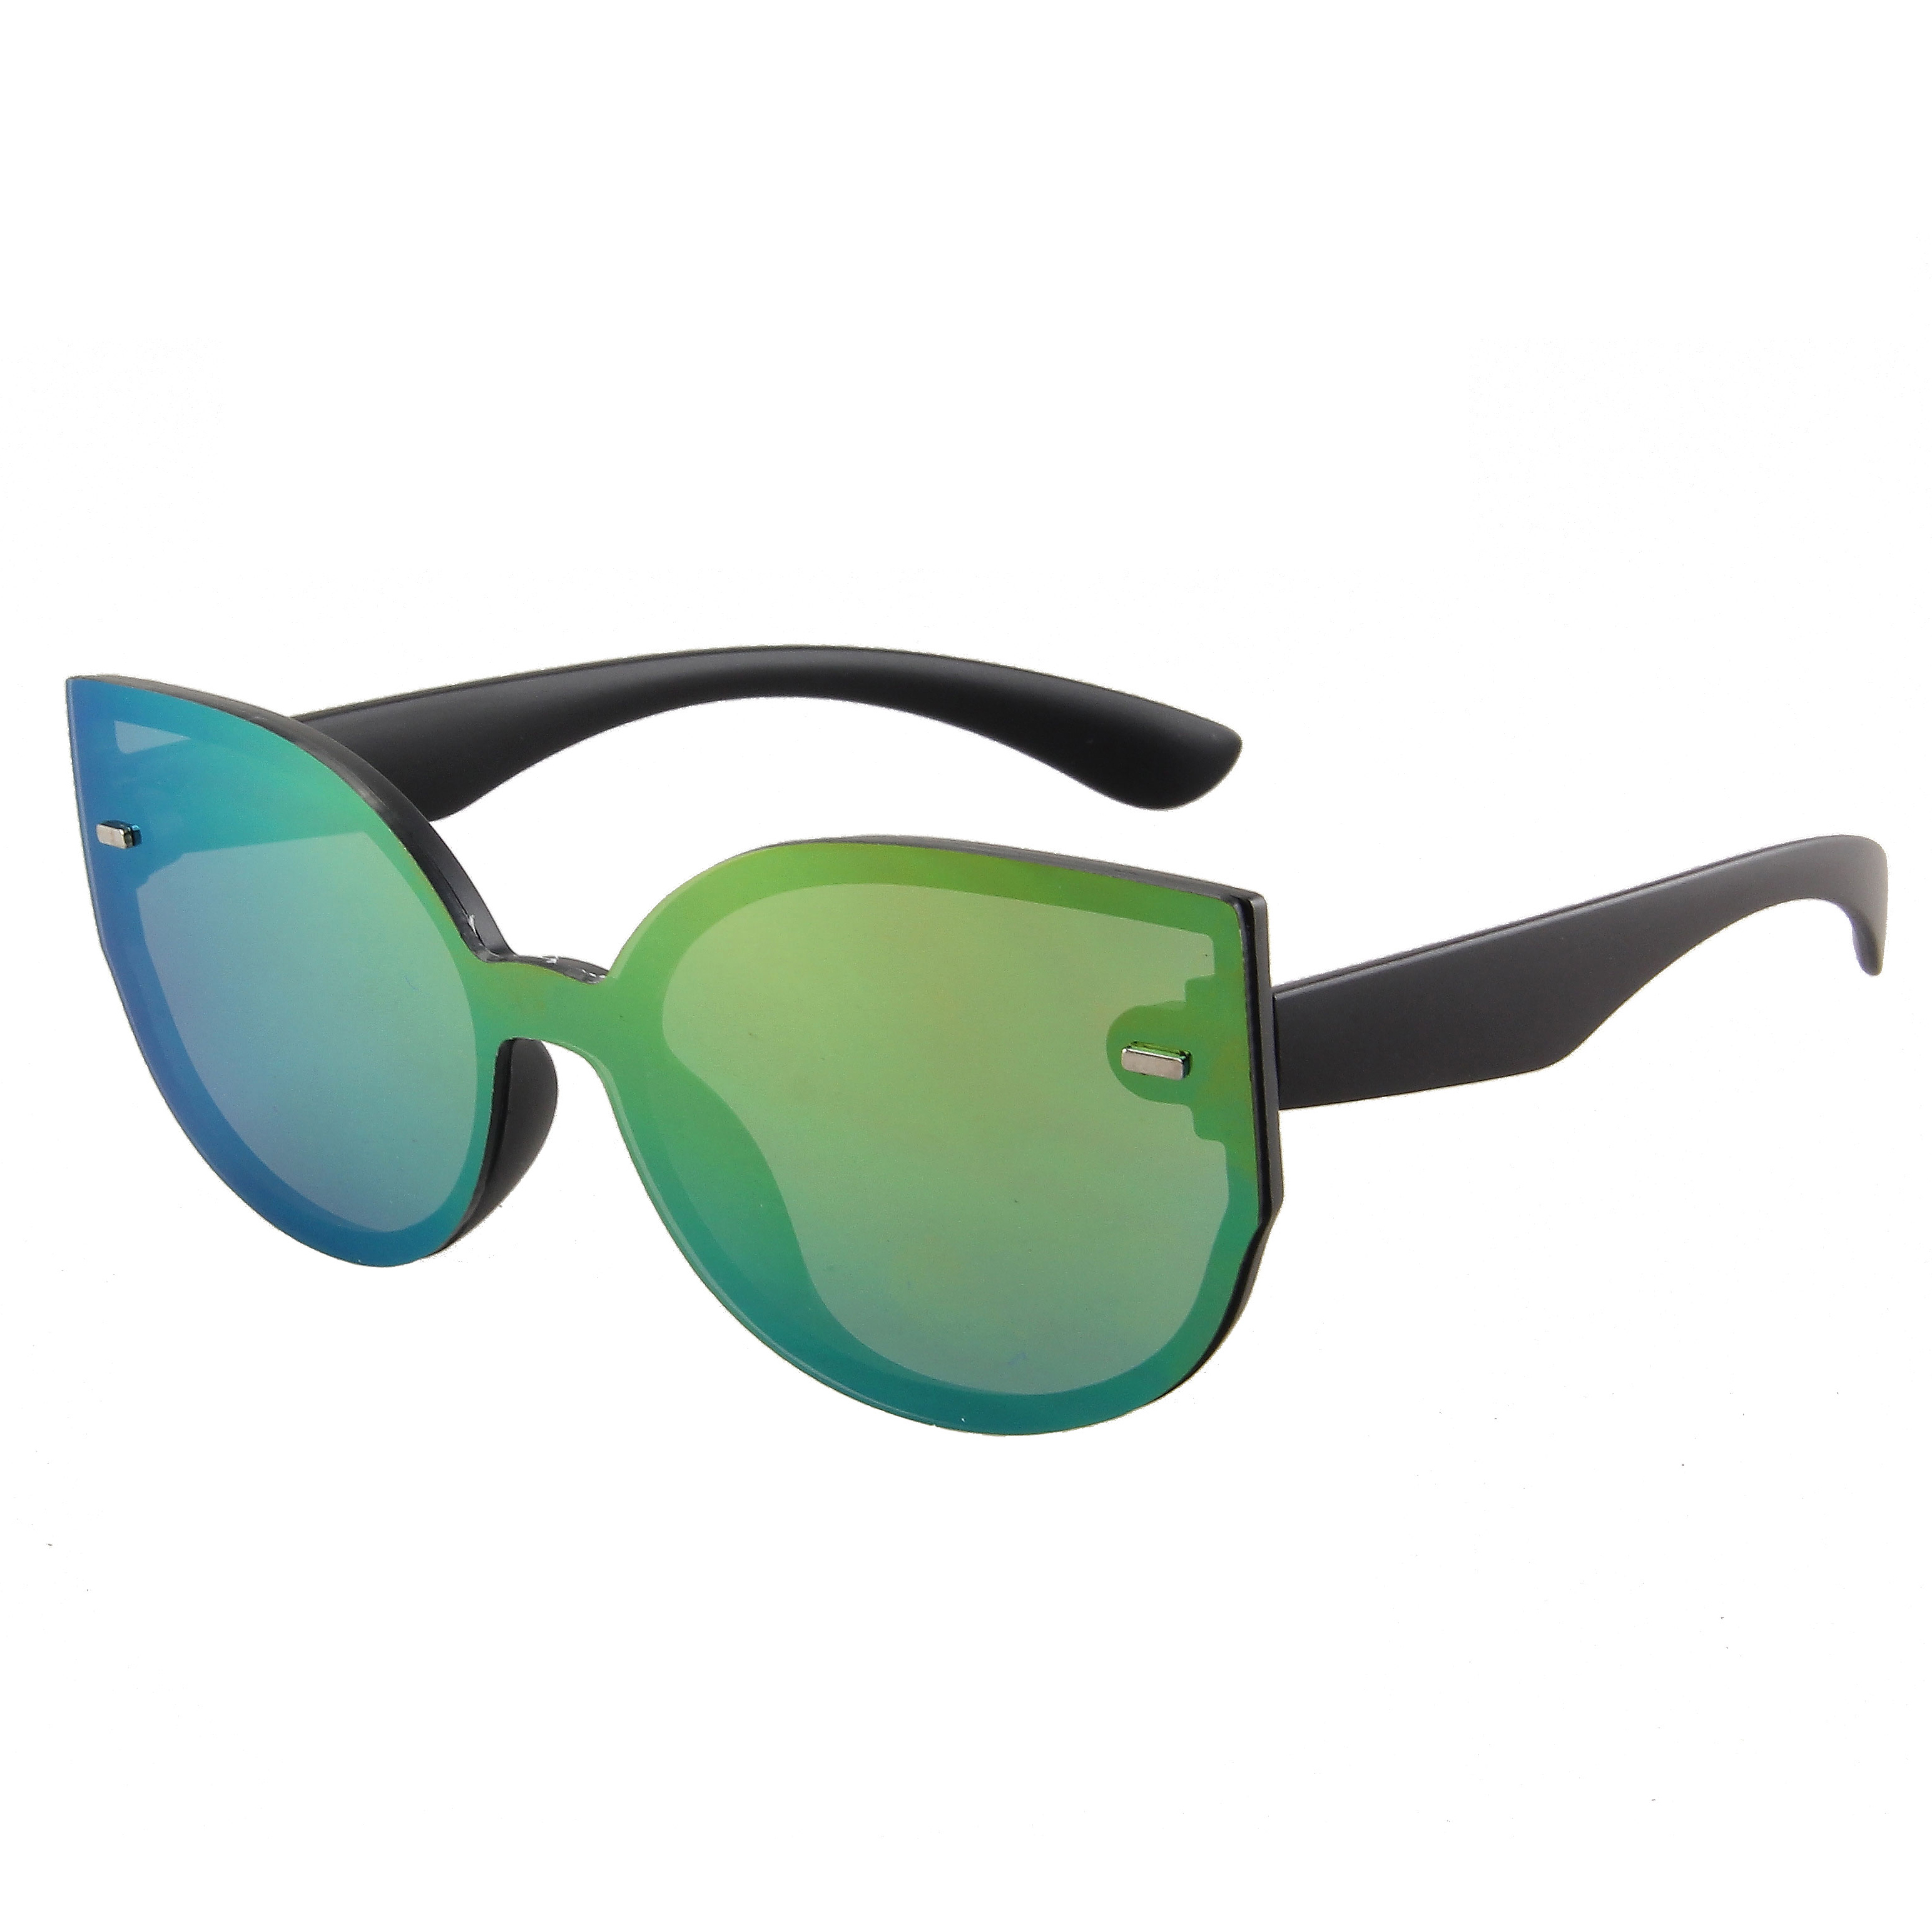 Fashion Revo Shield Matt Black 400 UV Green Revo